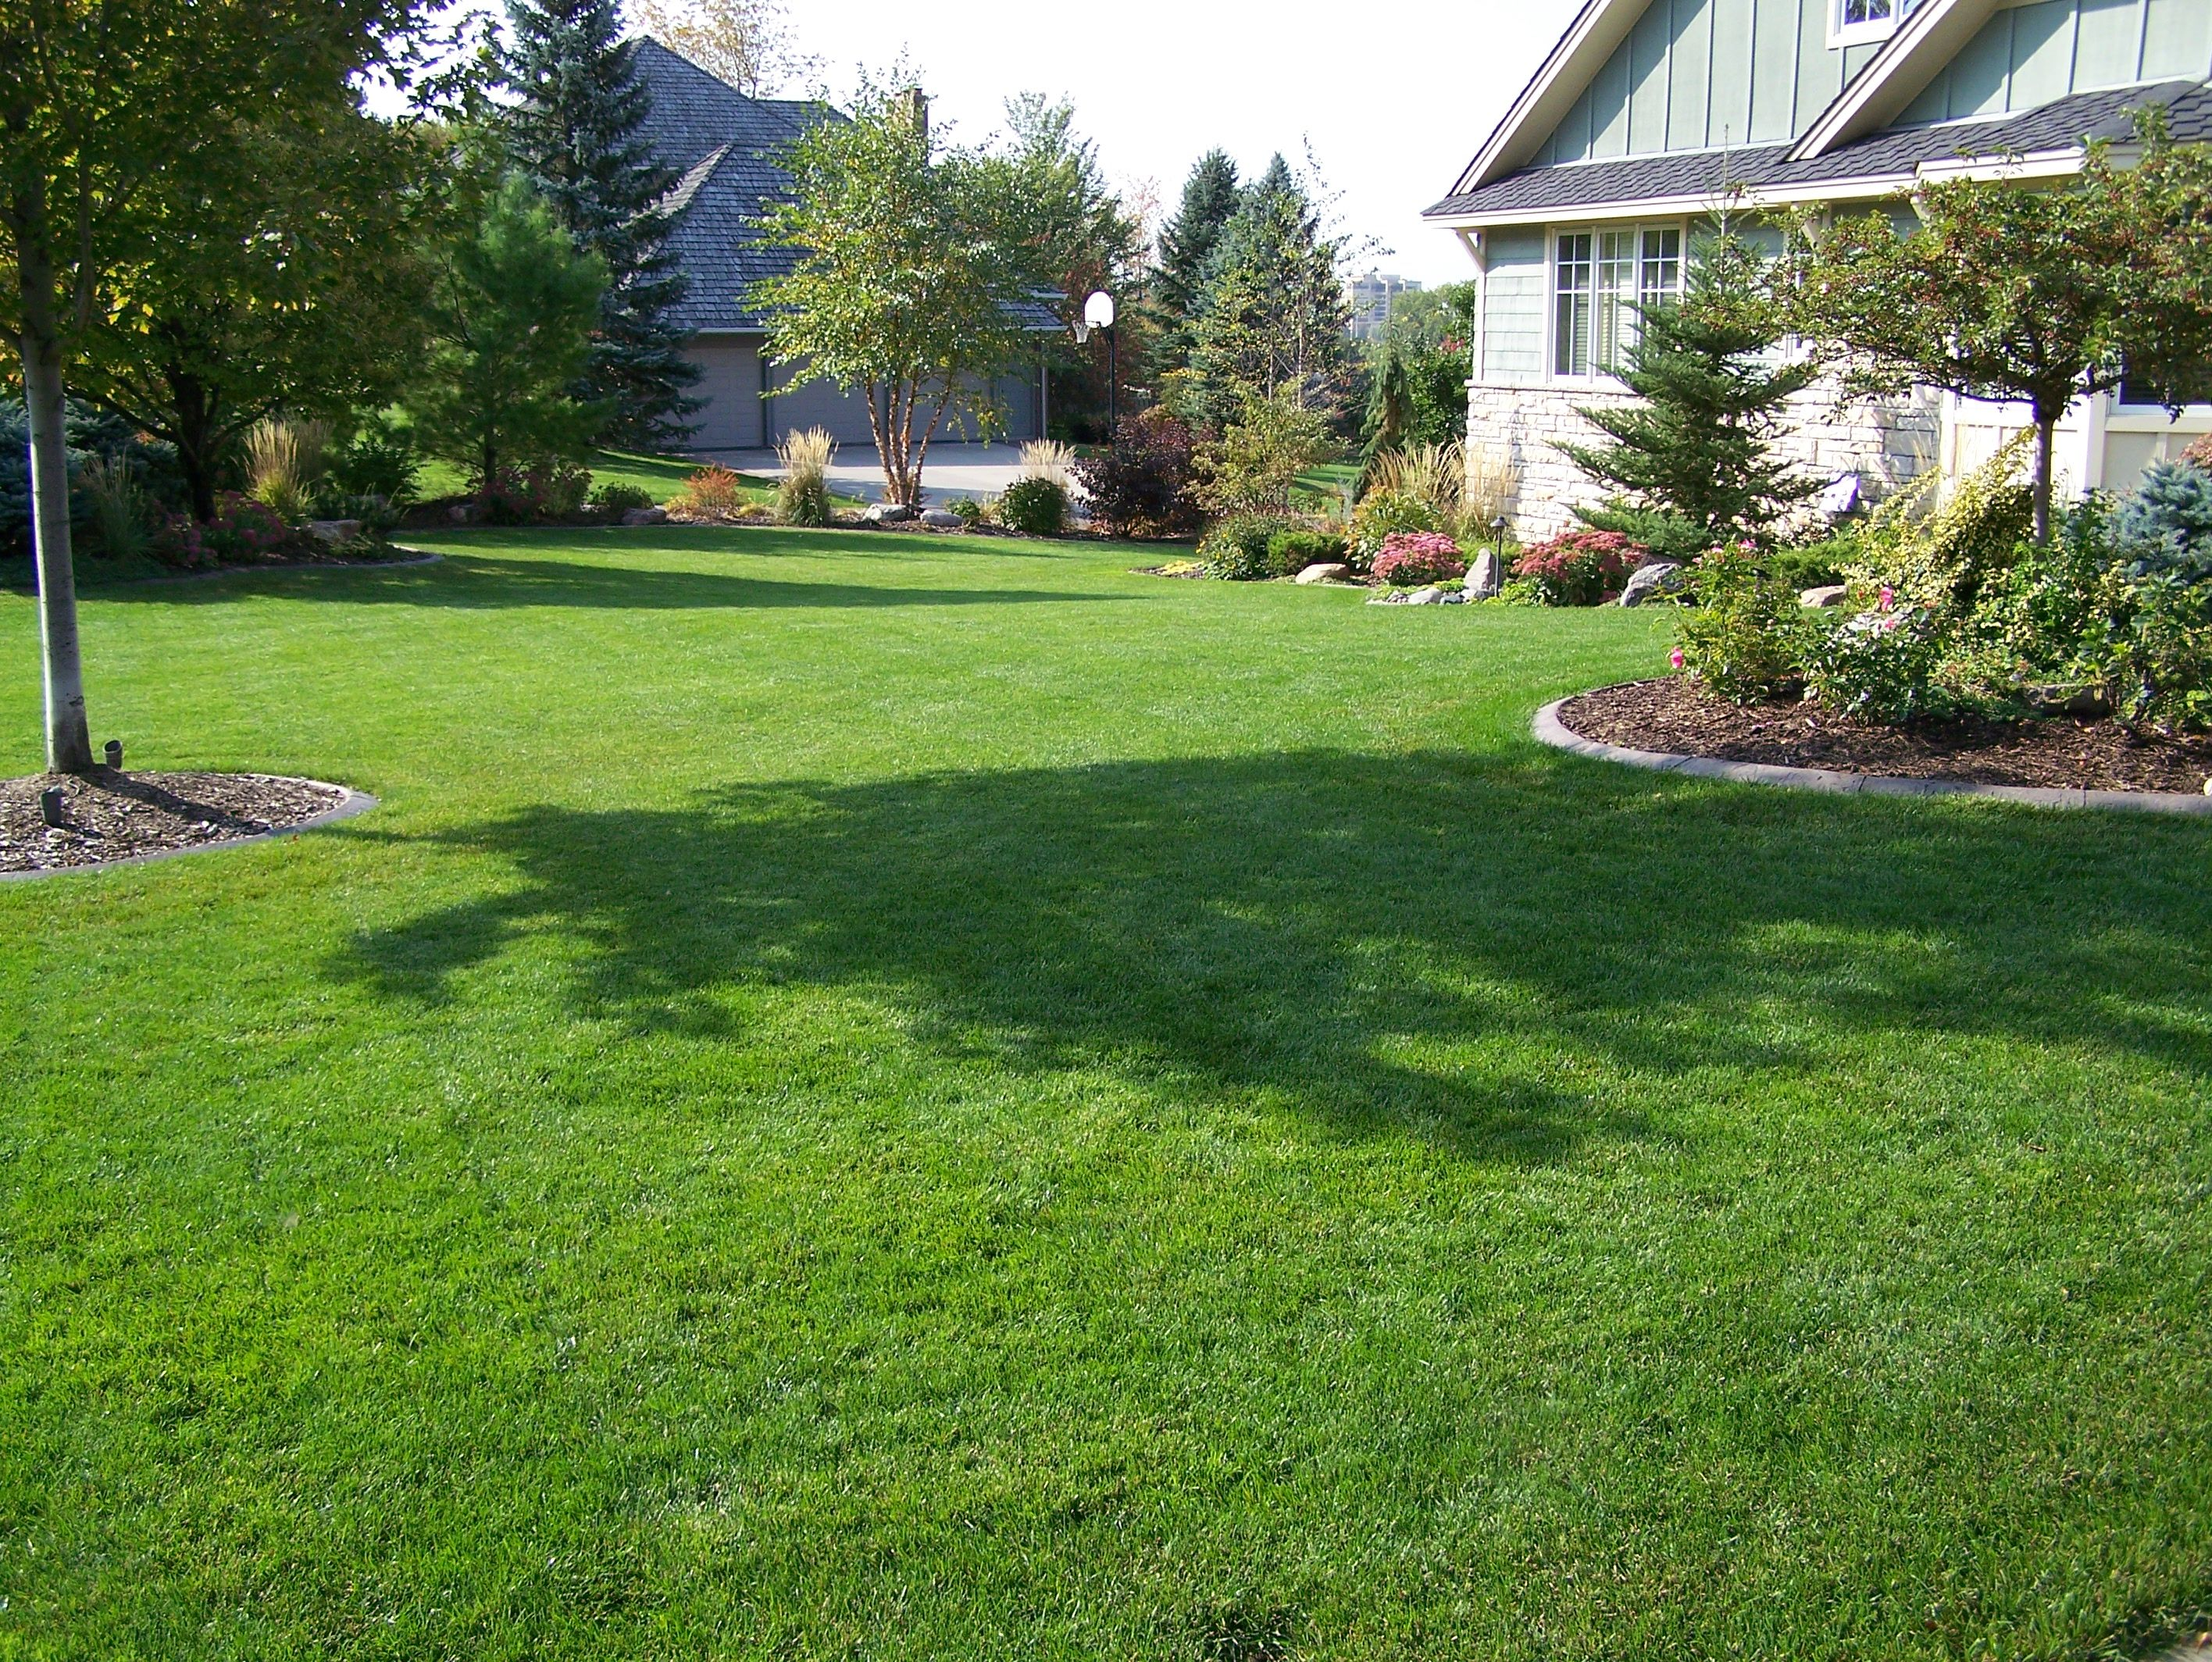 How to Treat Your Lawn in Spring Lawn care, Spring lawn